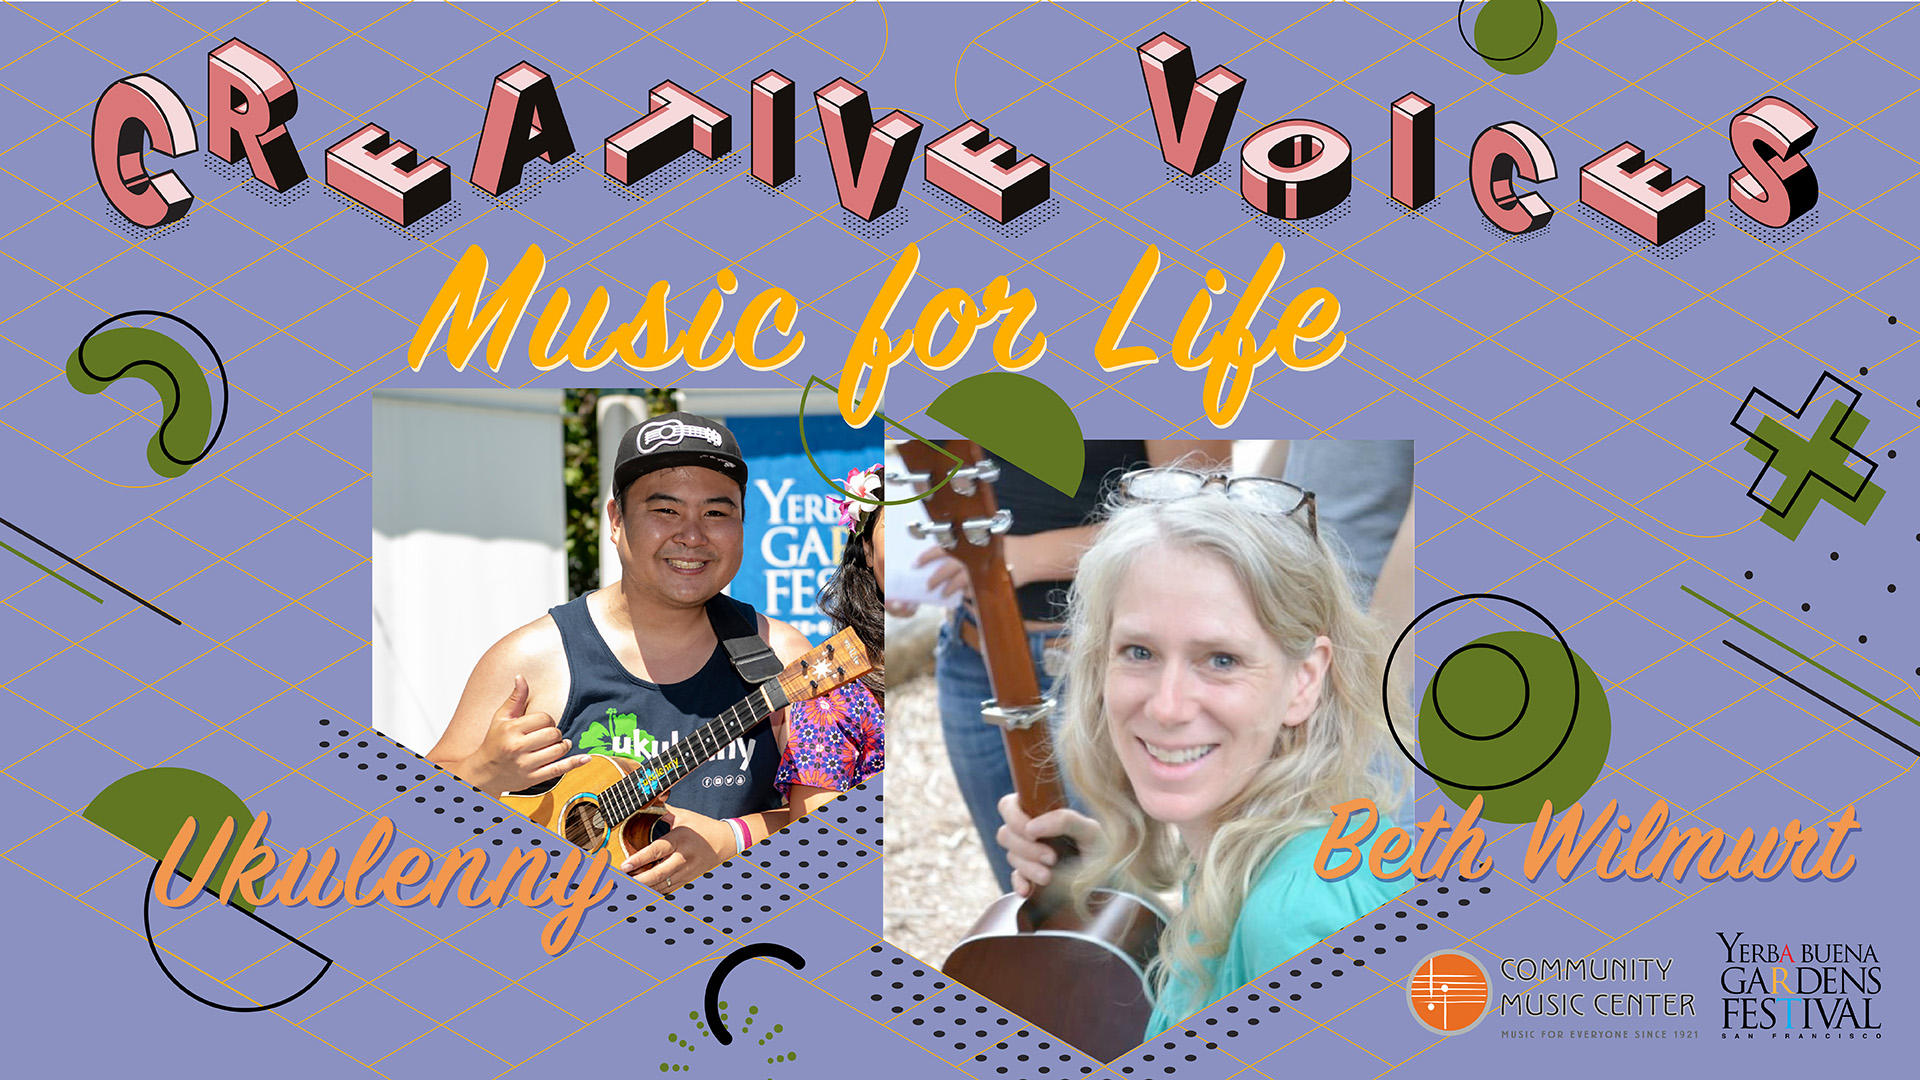 Creative Voices graphic featuring two photos. One photo is of Ukulenny smiling, holding a ukulele on one hand, and showing the shaka hand sign with the other.. The other photo shows Beth Wilmurt smiling, holding the neck of a guitar.